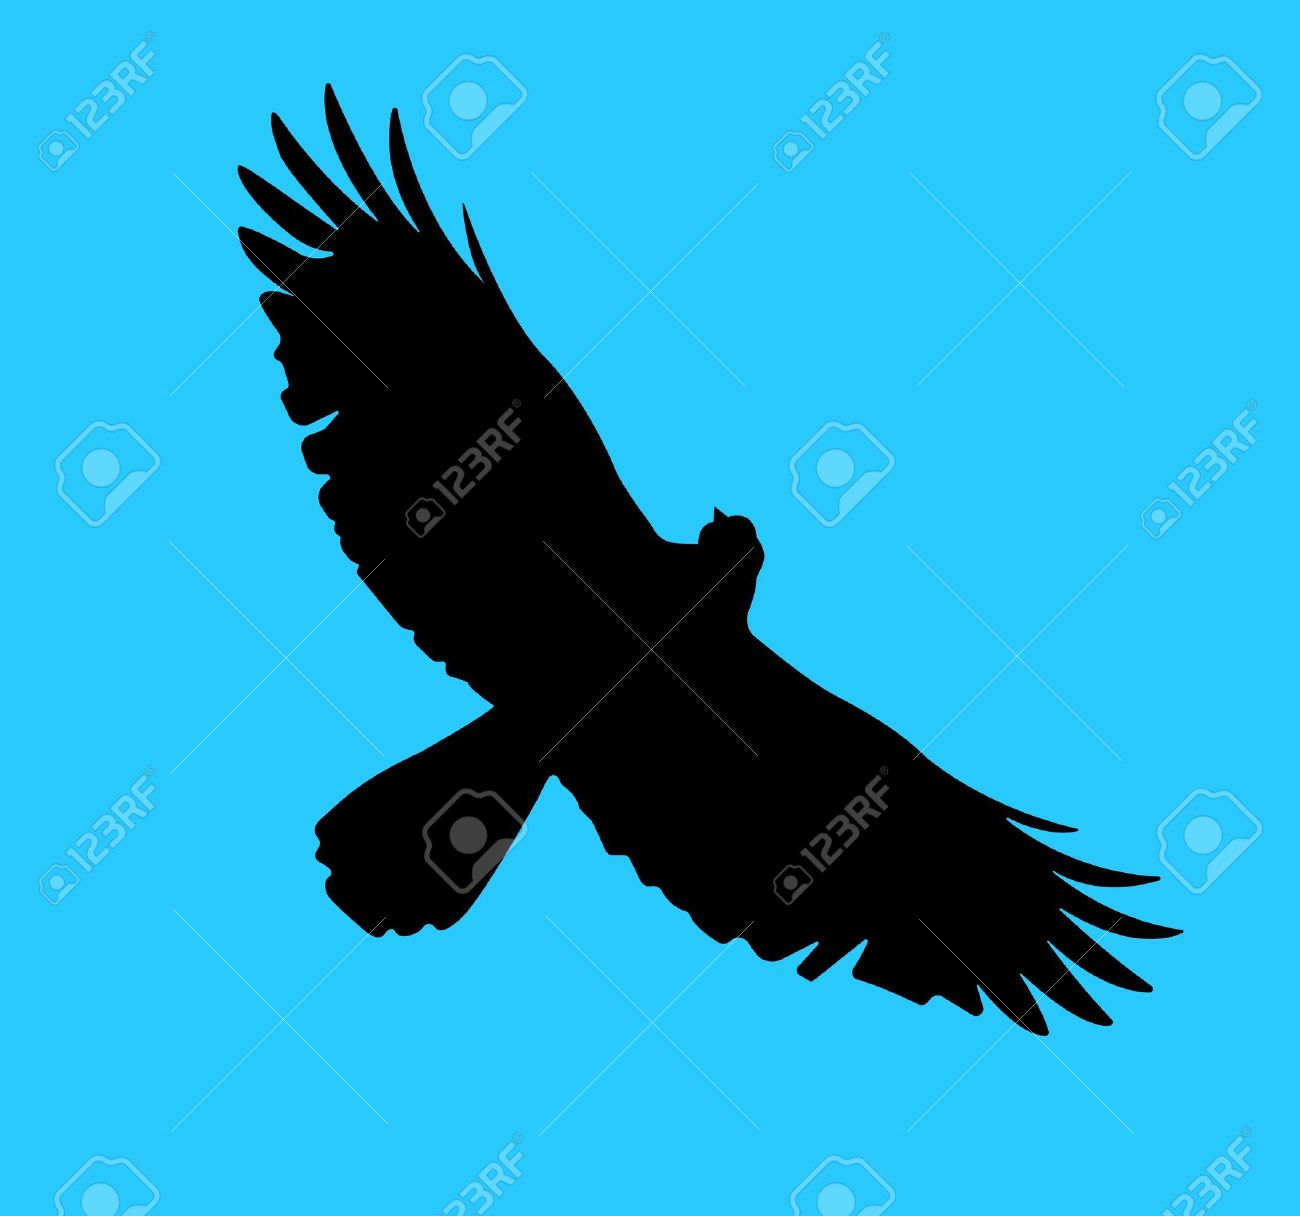 Silhouette of the bird of prey soaring in the blue sky Stock Vector - 19749914